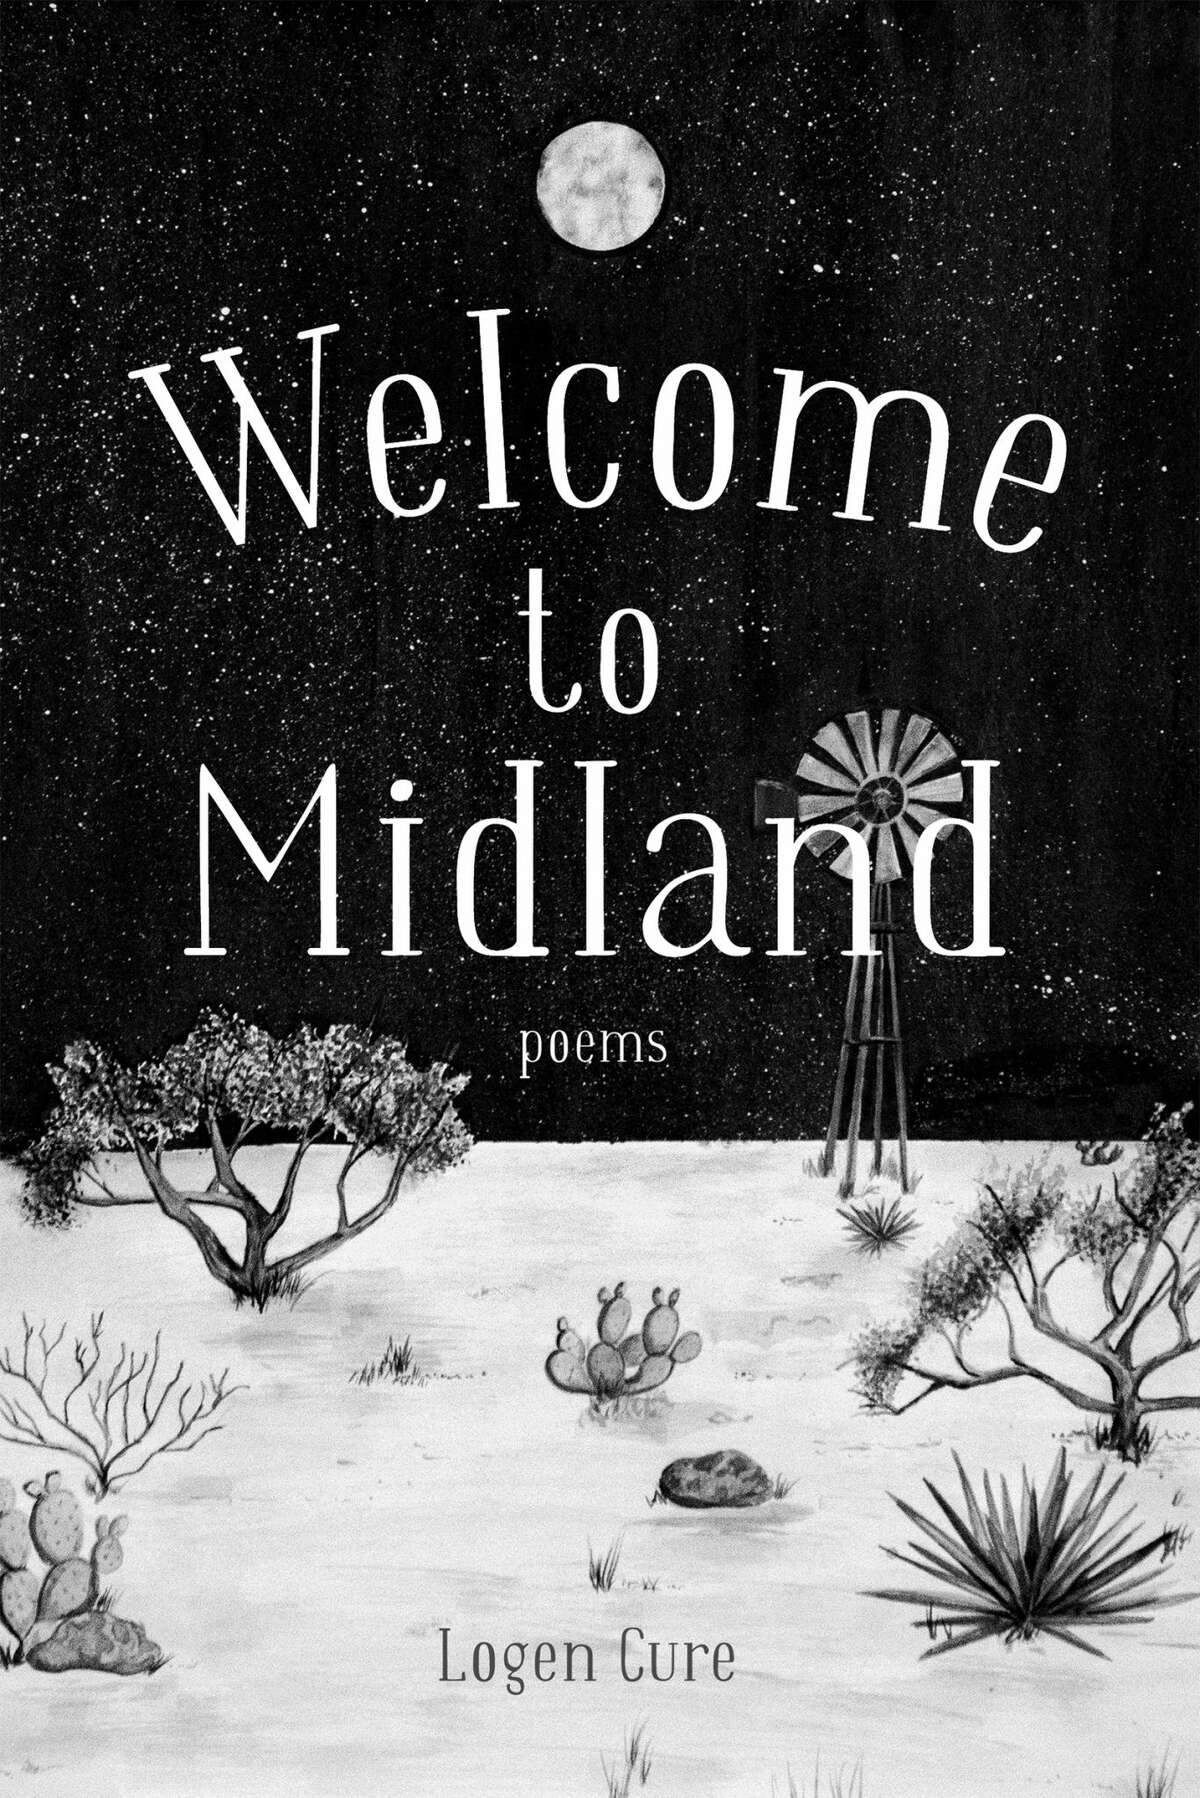 """The cover of """"Welcome to Midland"""" by Logen Cure."""